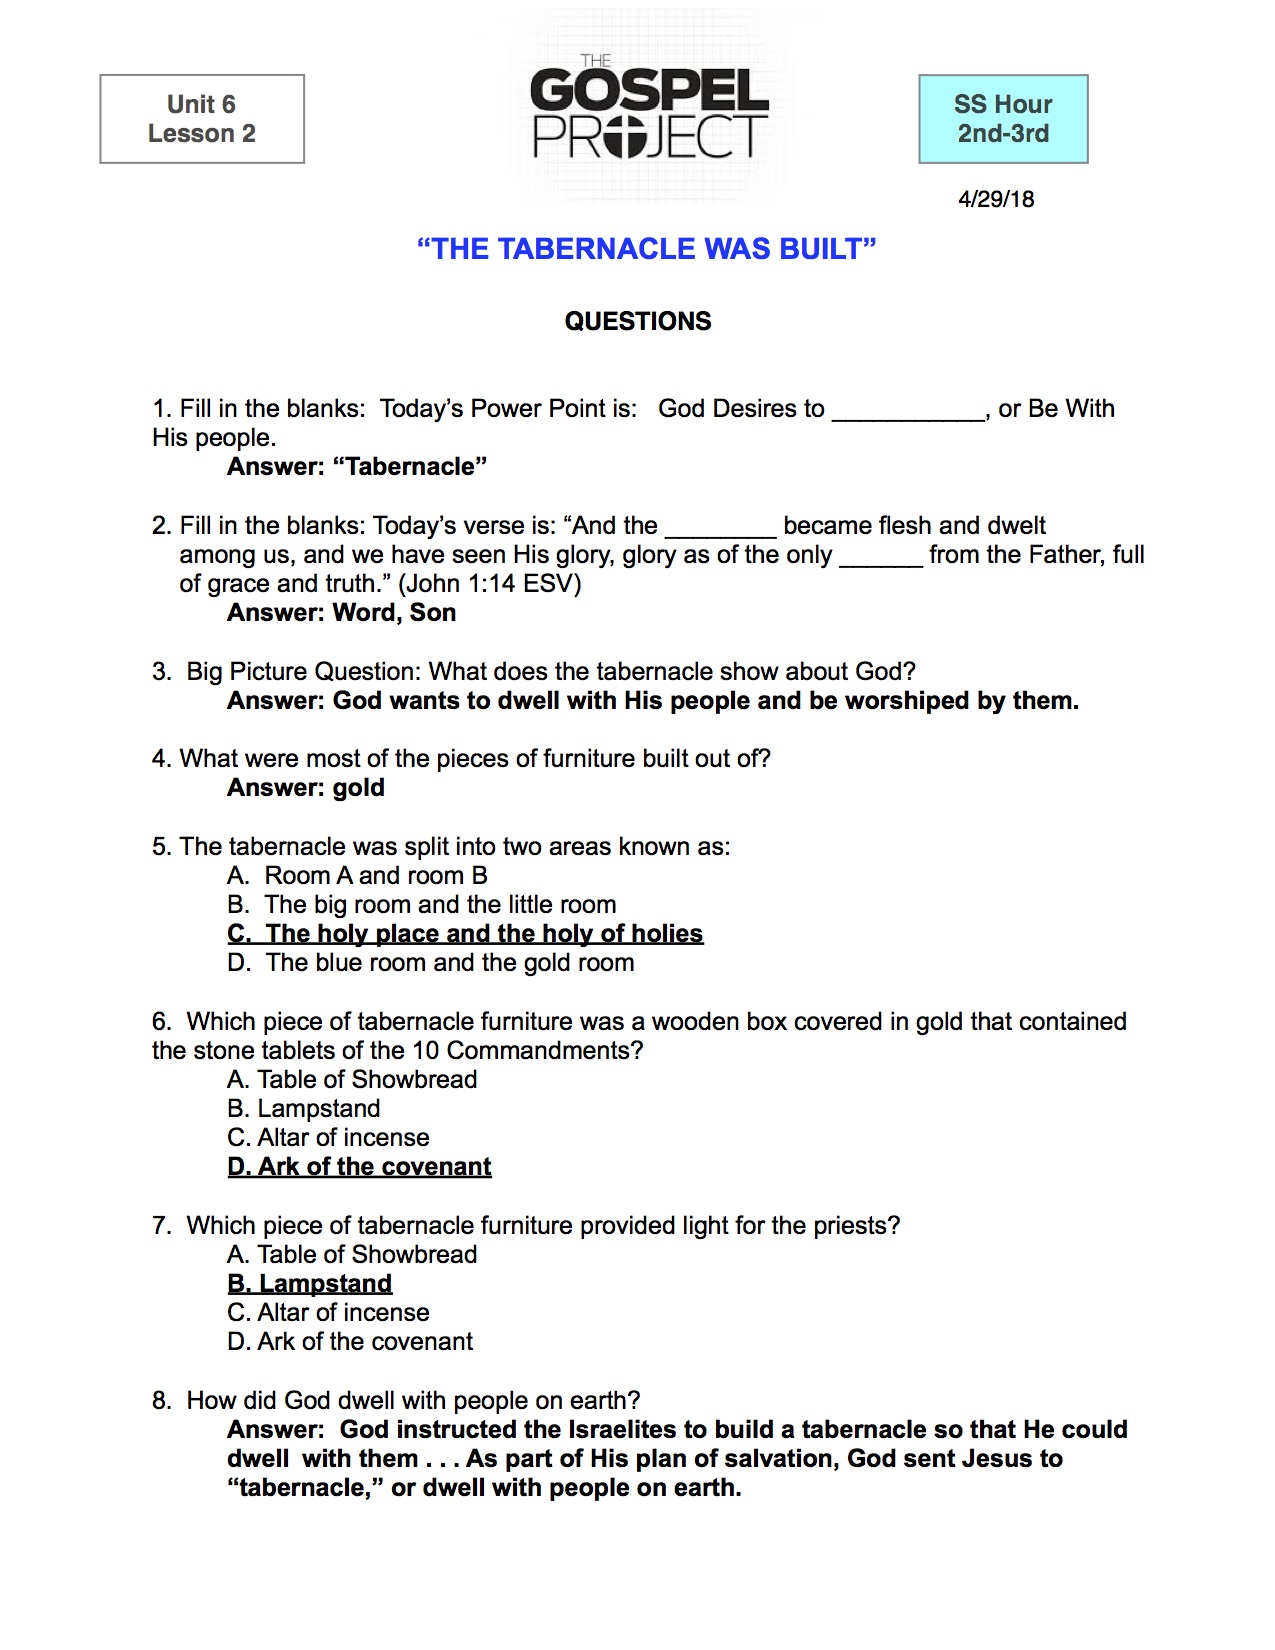 U6 L2 2nd-3rd Questions The Tabernacle